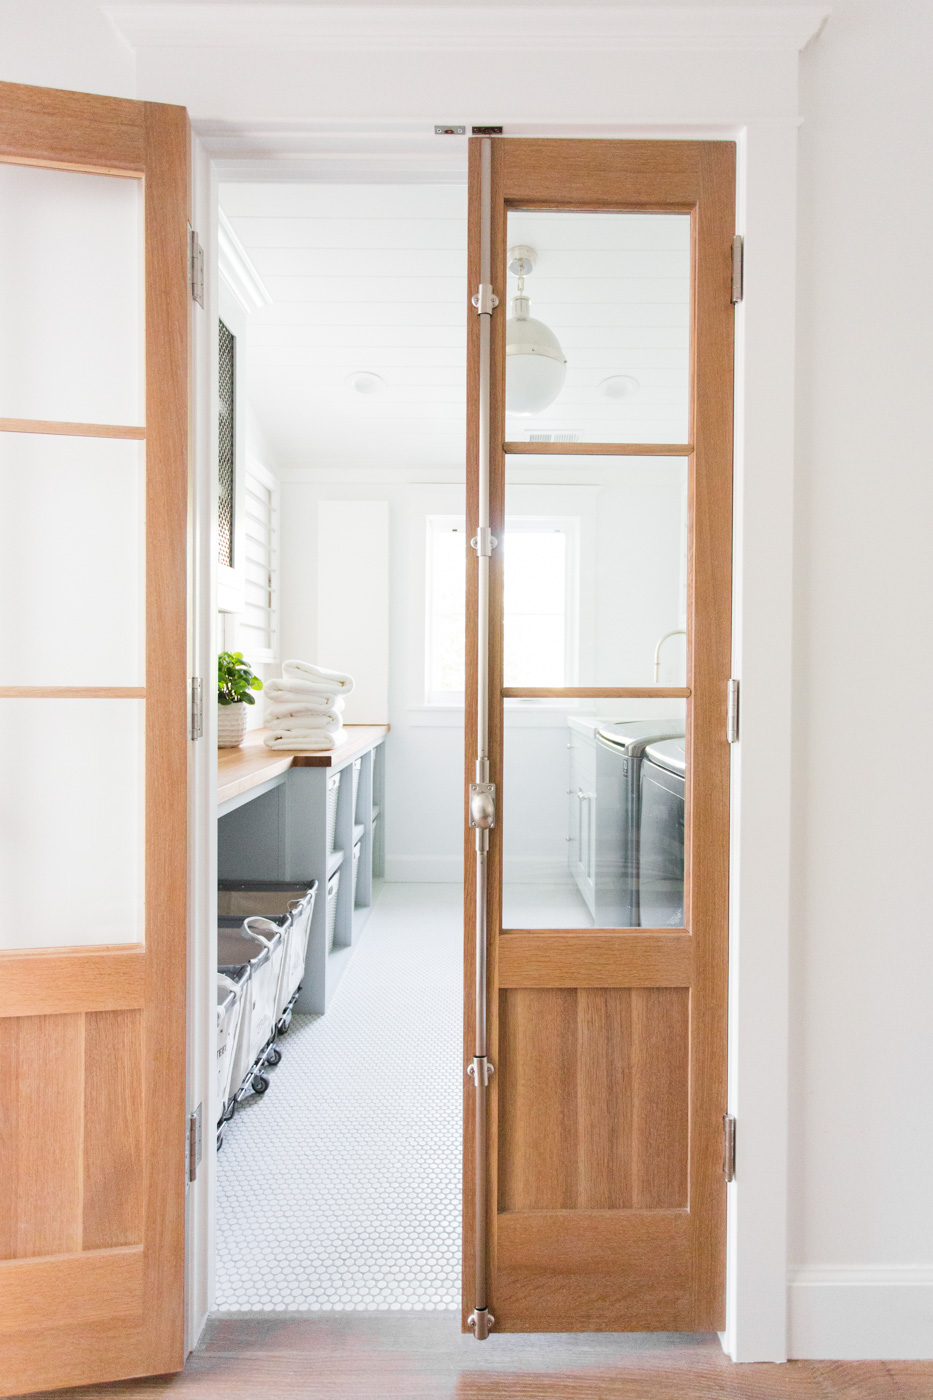 Natural wood door into laundry room || Studio McGee